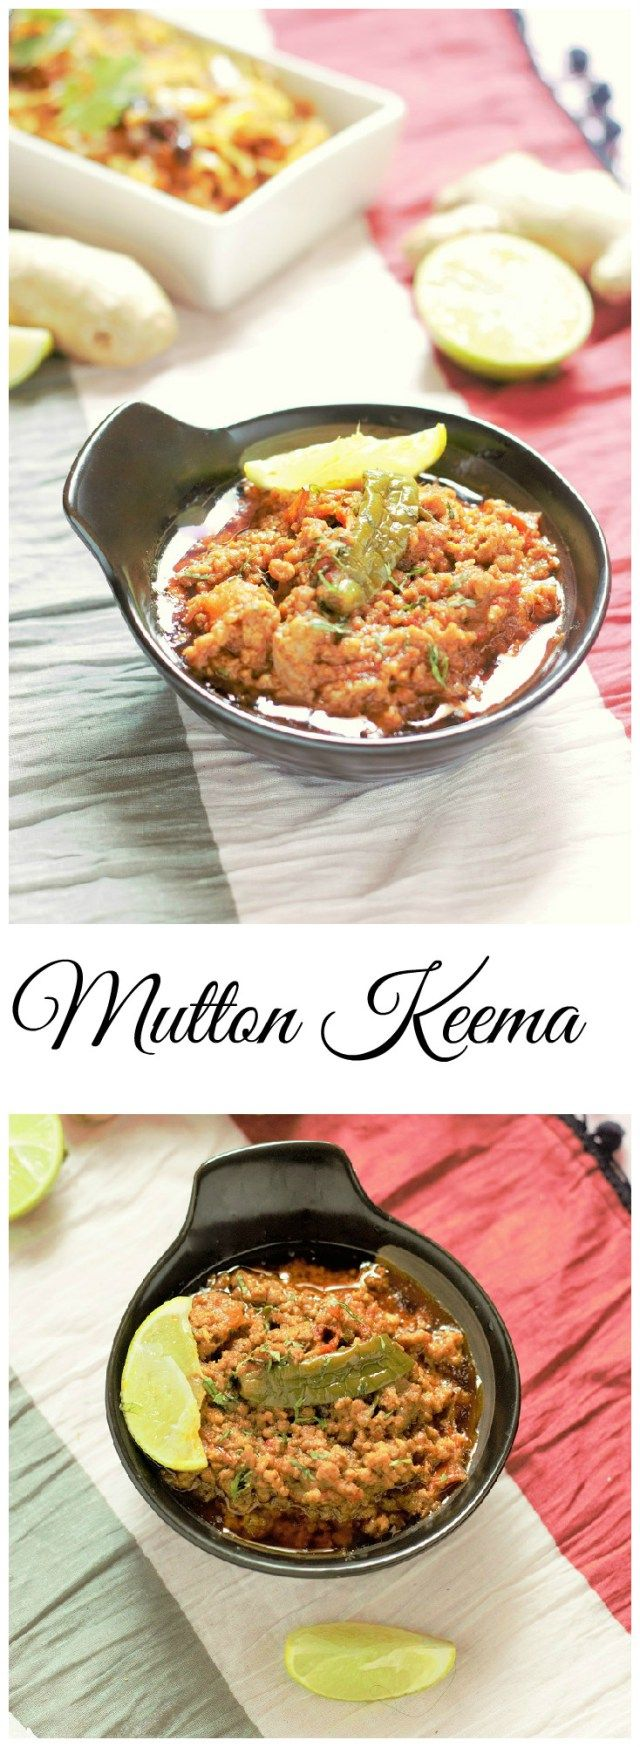 The 25 best keema recipes ideas on pinterest best keema recipe mutton keema recipe forumfinder Images